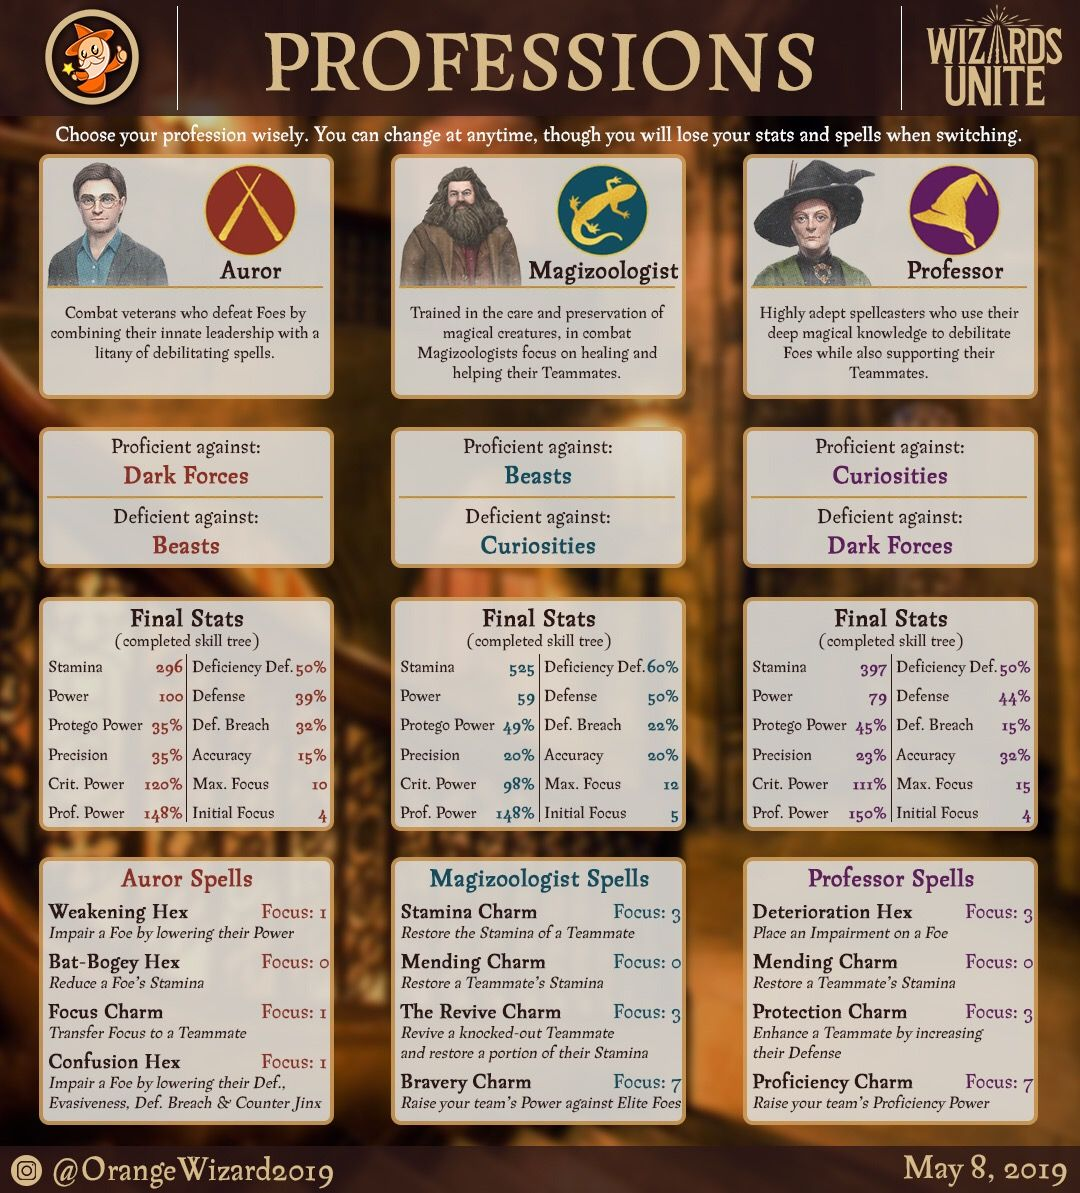 Choosing A Profession In Harry Potter Wizards Unite Harry Potter Wizard Harry Potter Games Potter